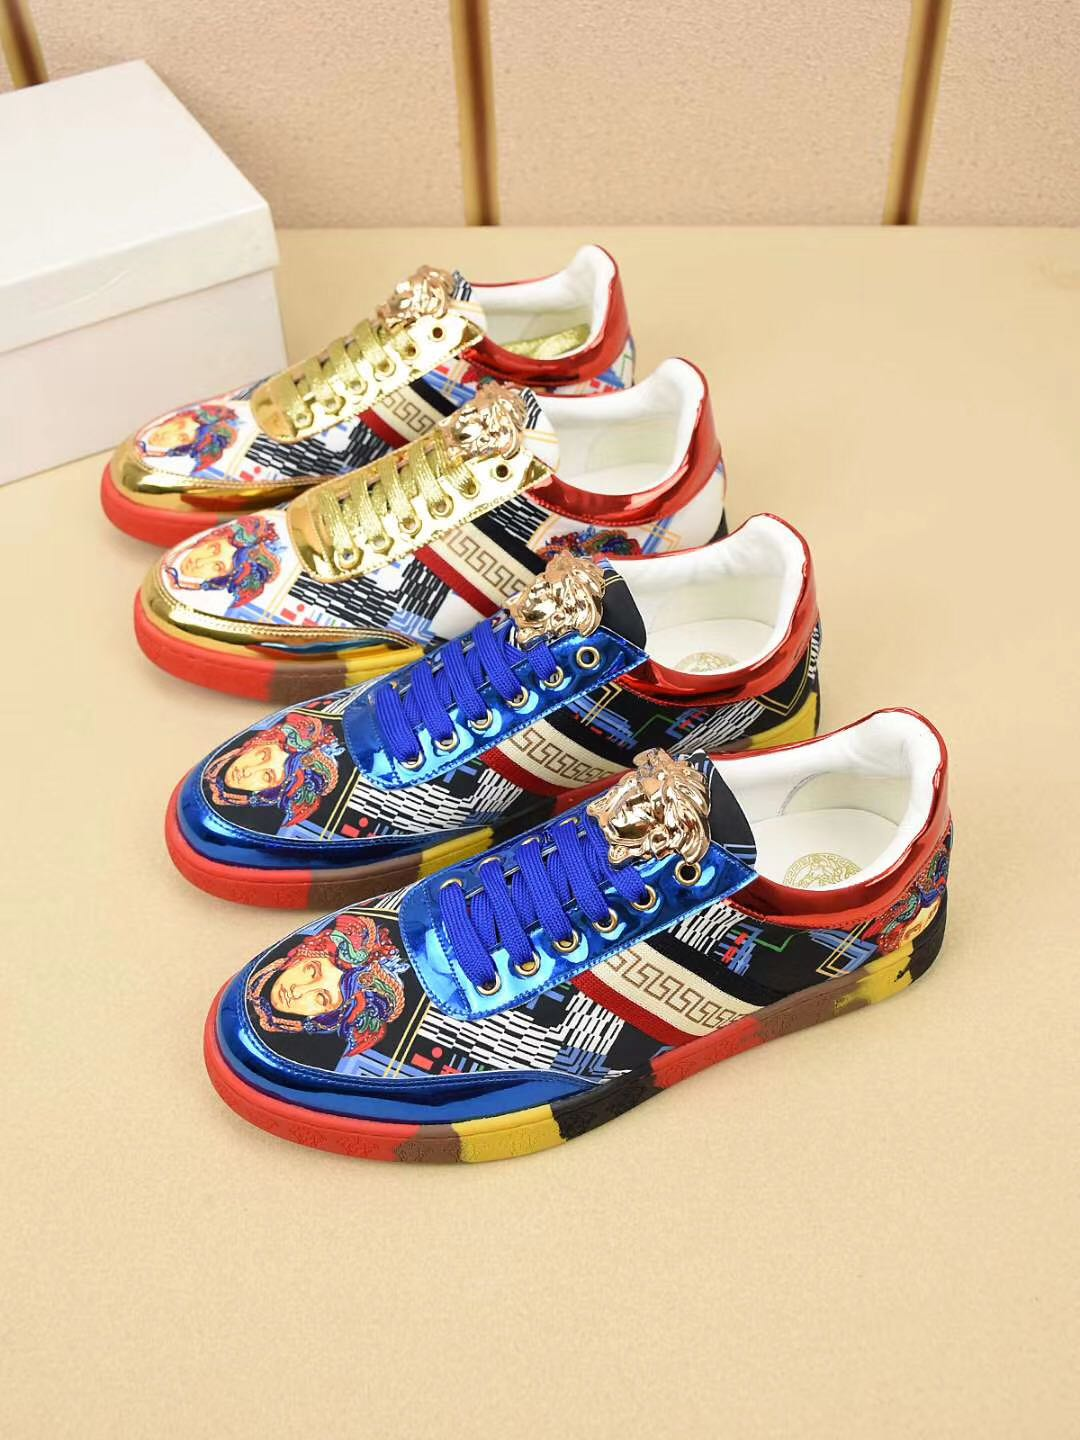 New low top lace up casual shoes printed pattern trendy shoes classic versatile four season breathable shoes comfortable head